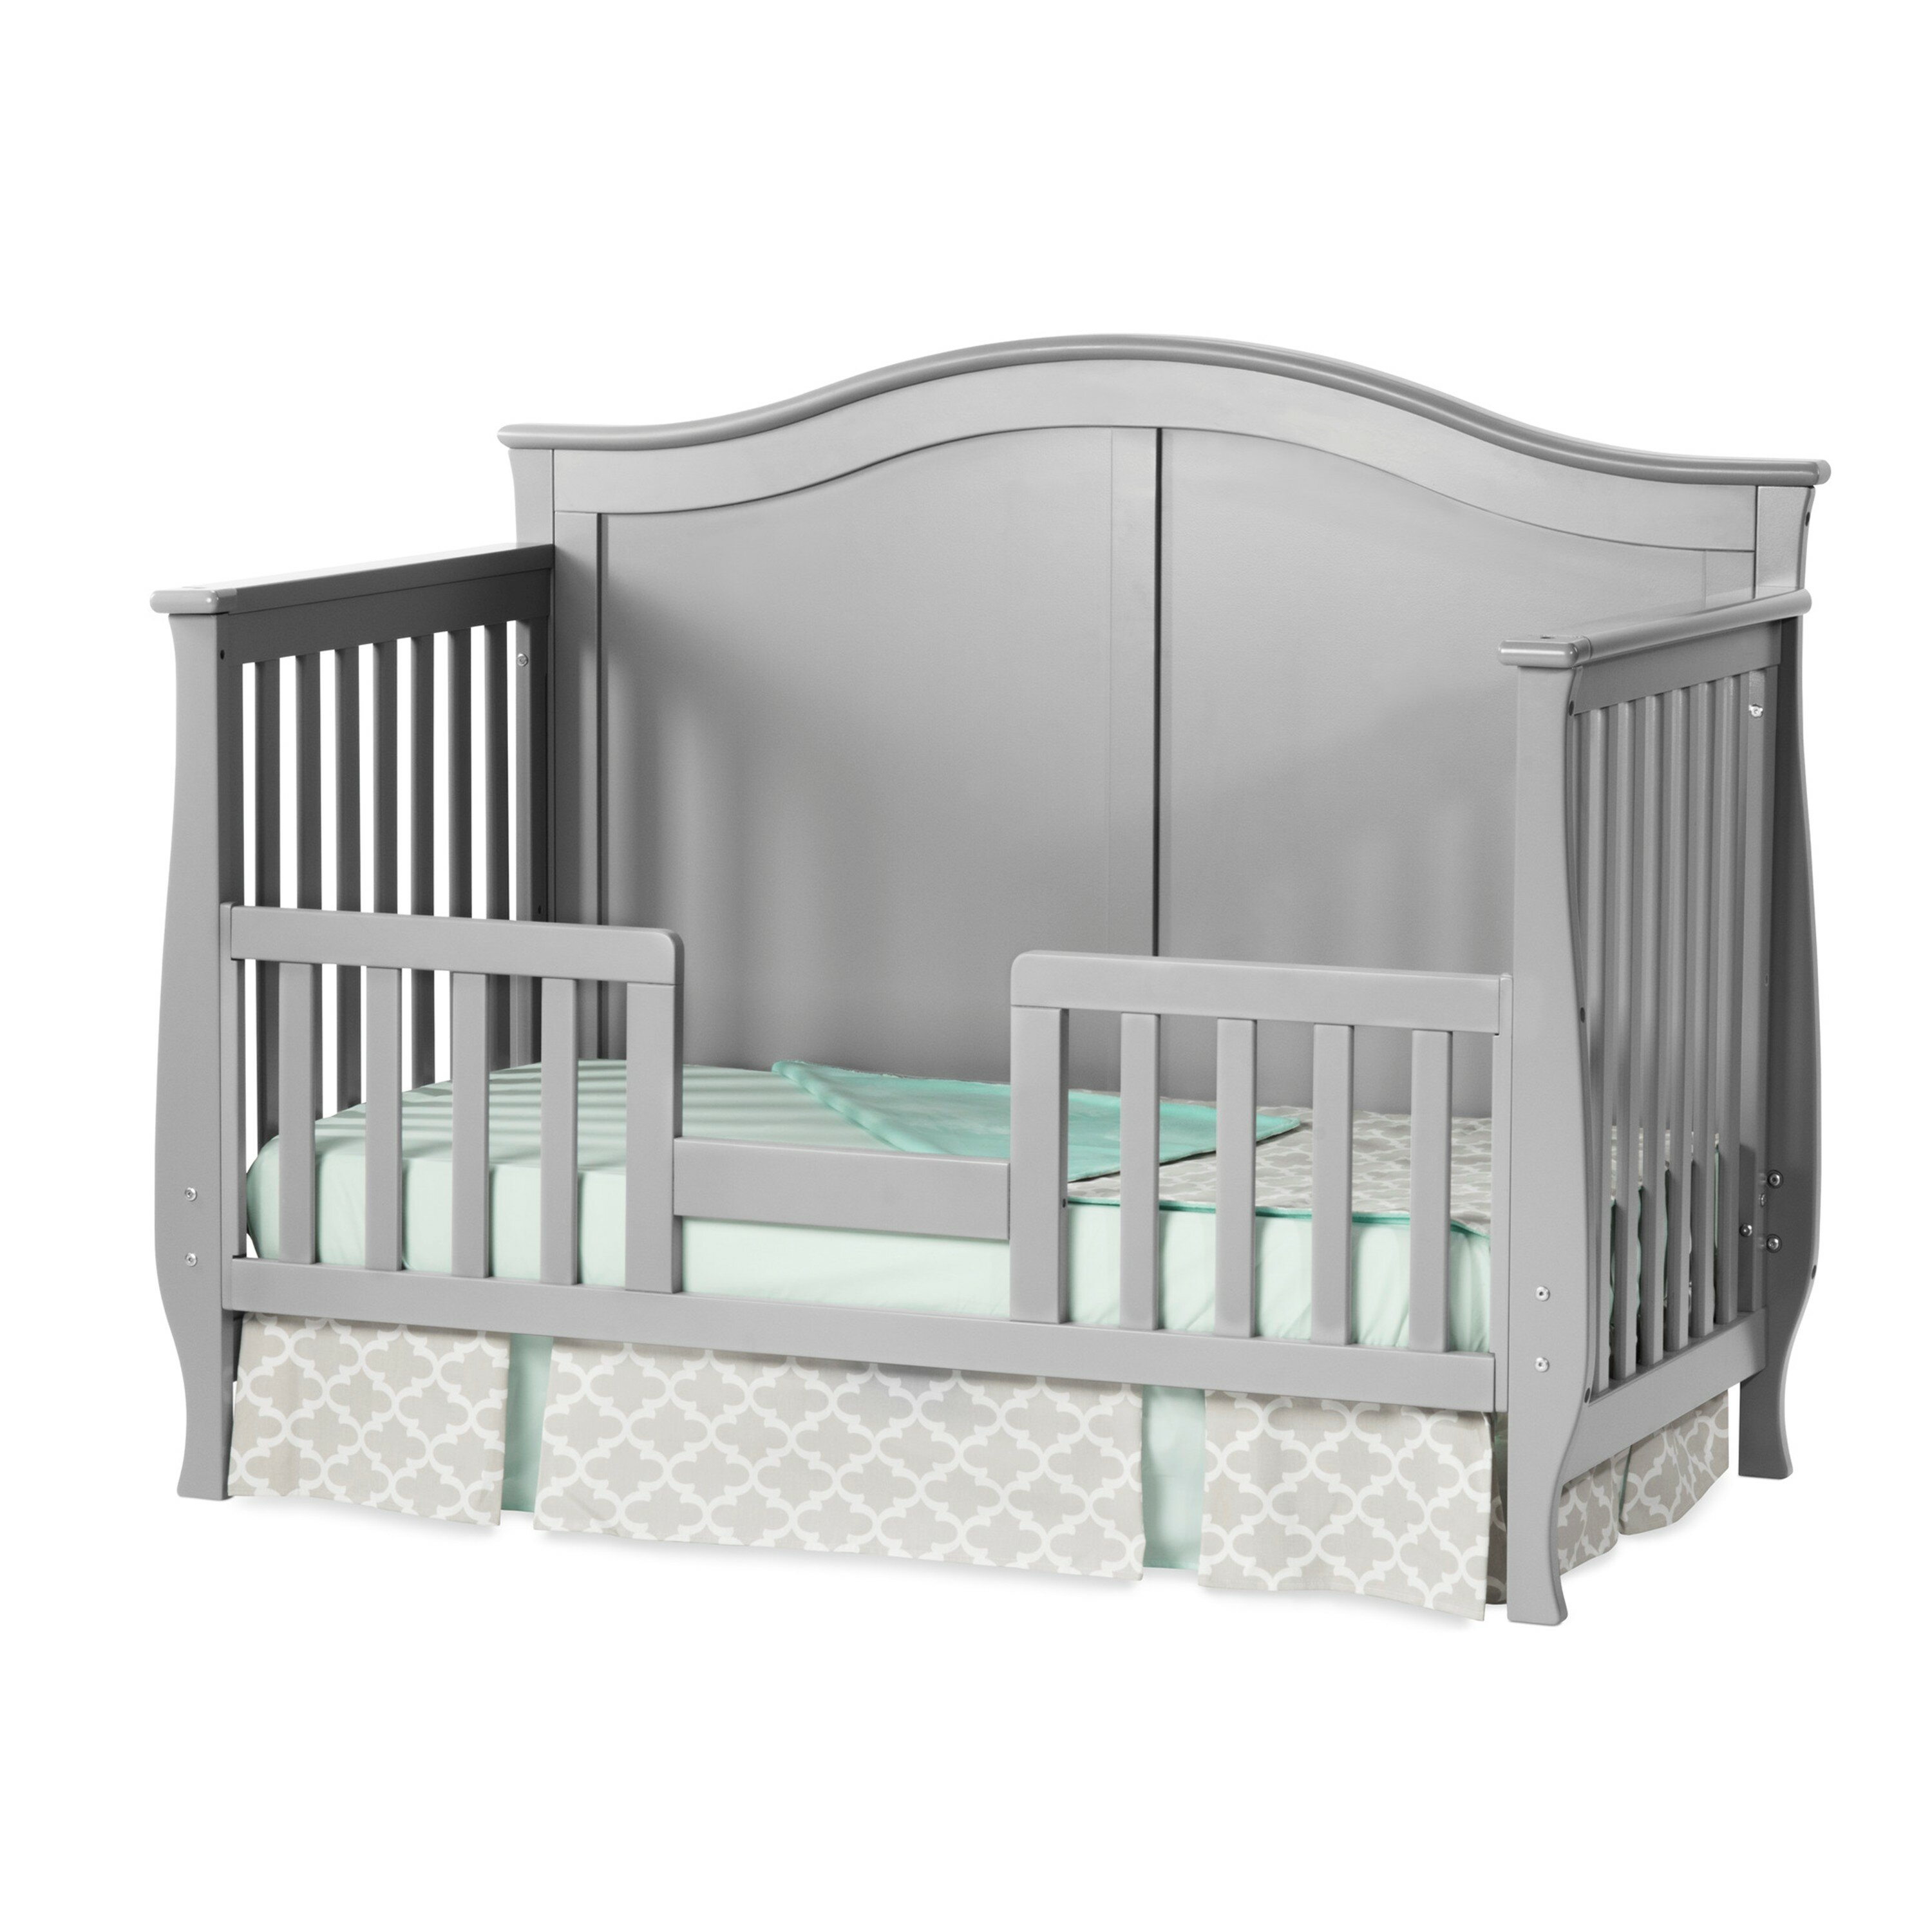 Crib for sale louisville ky - Baby Cribs Louisville Ky Child Craft Camden 4 In 1 Convertible Crib